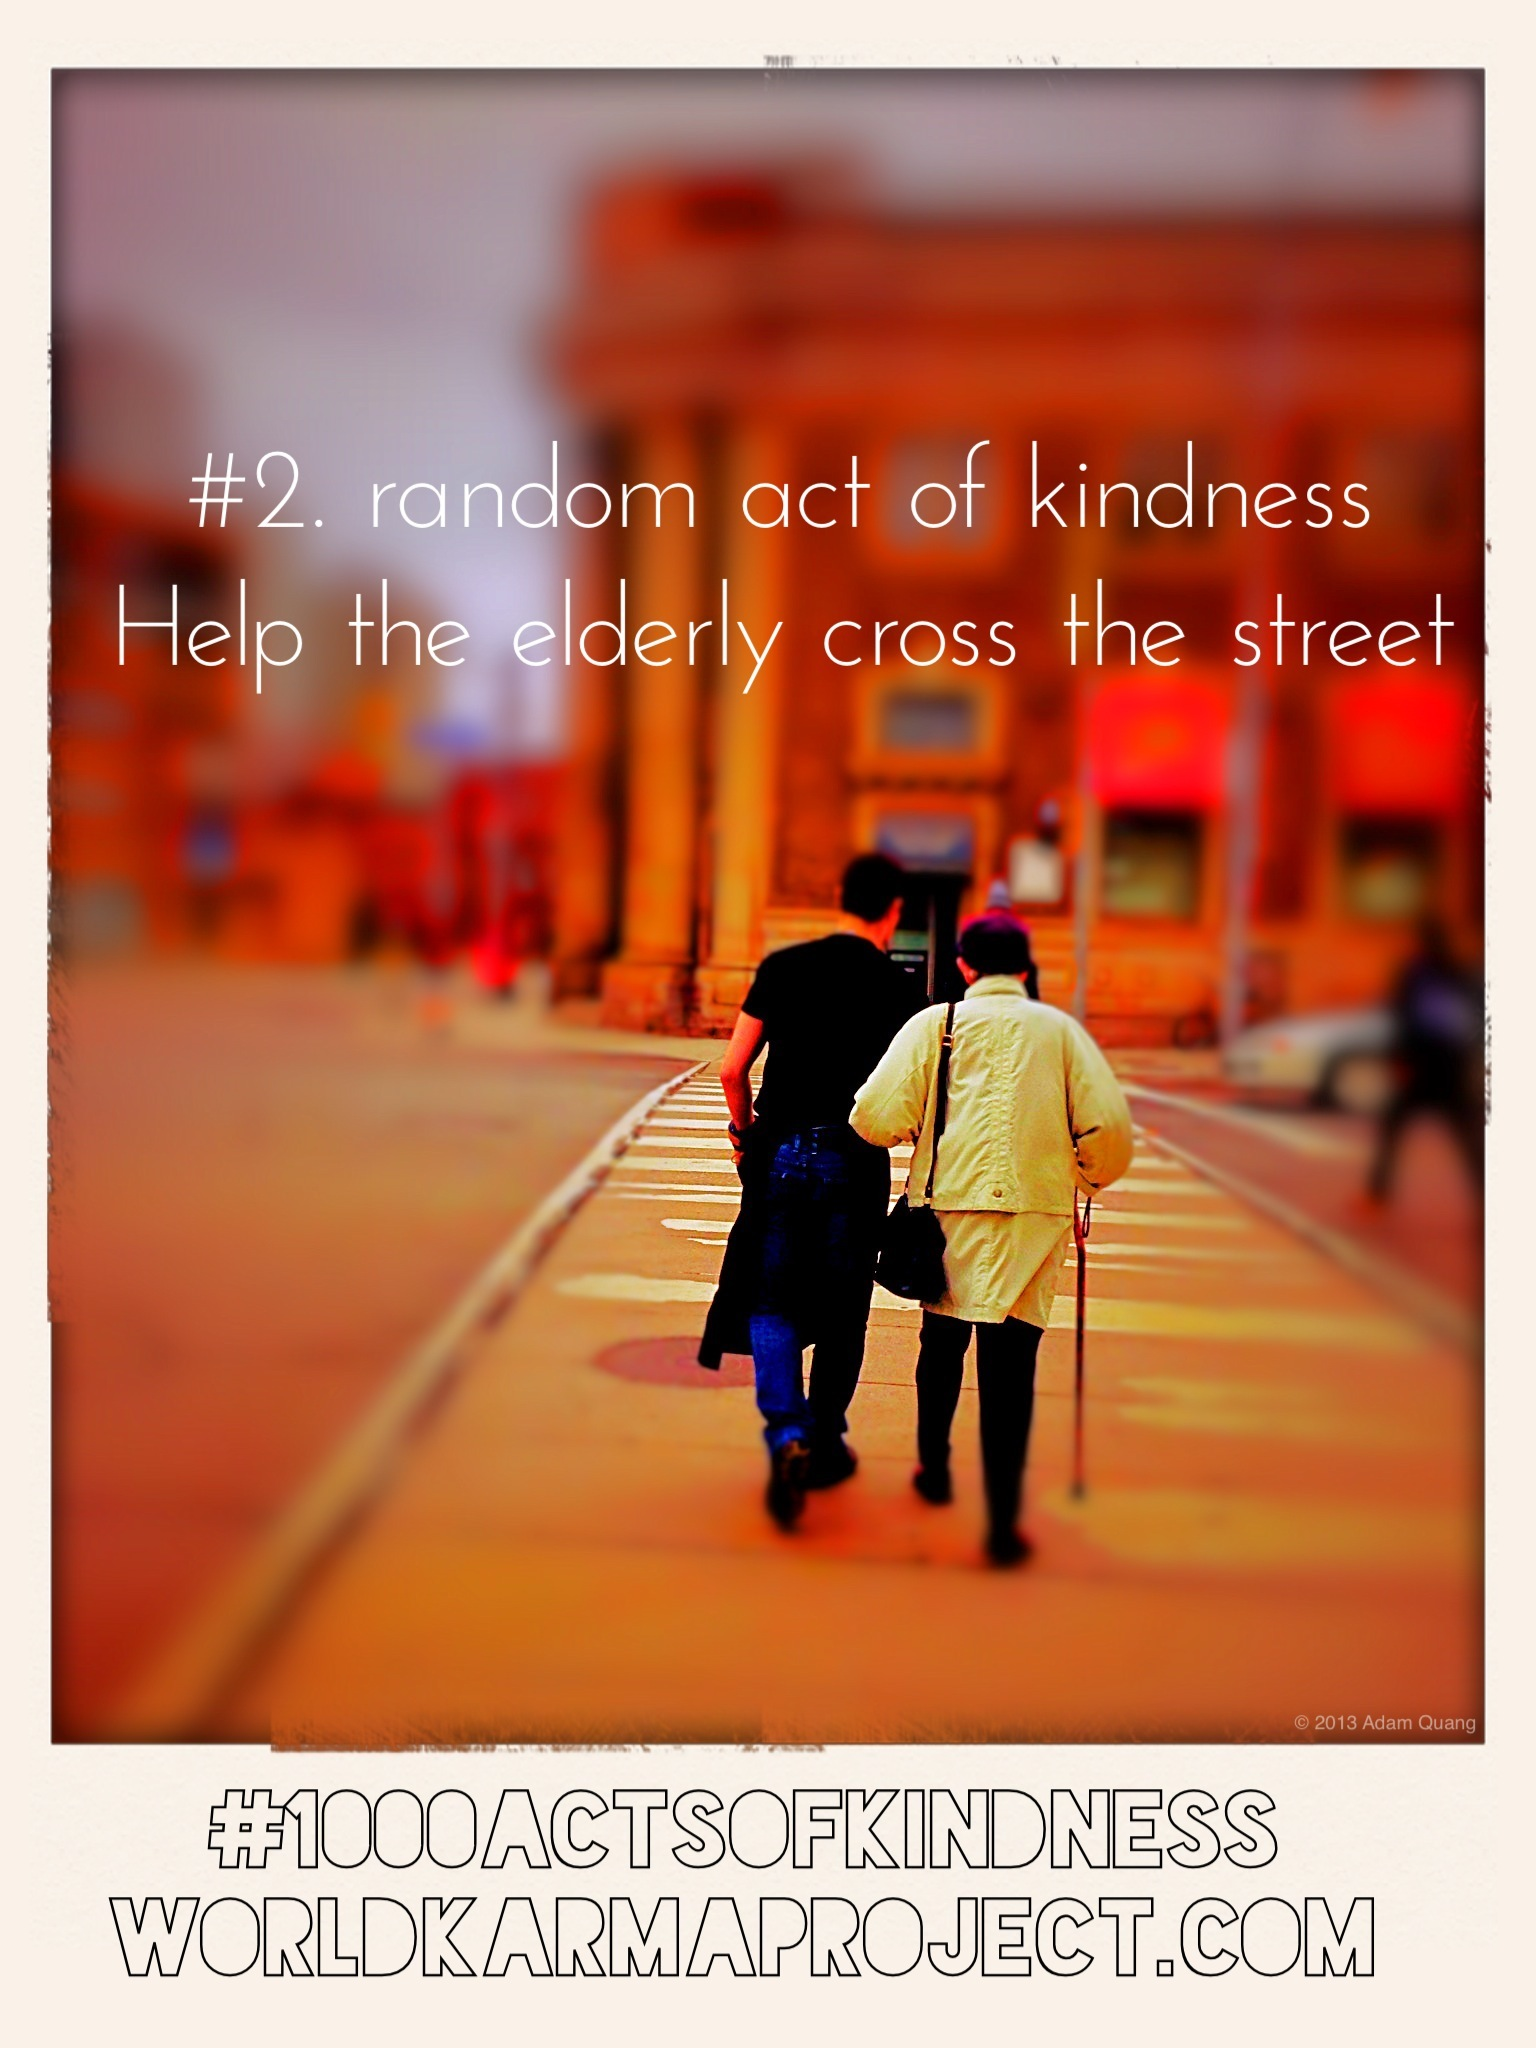 2.Help the elderly cross the street #1000ActsofKindness